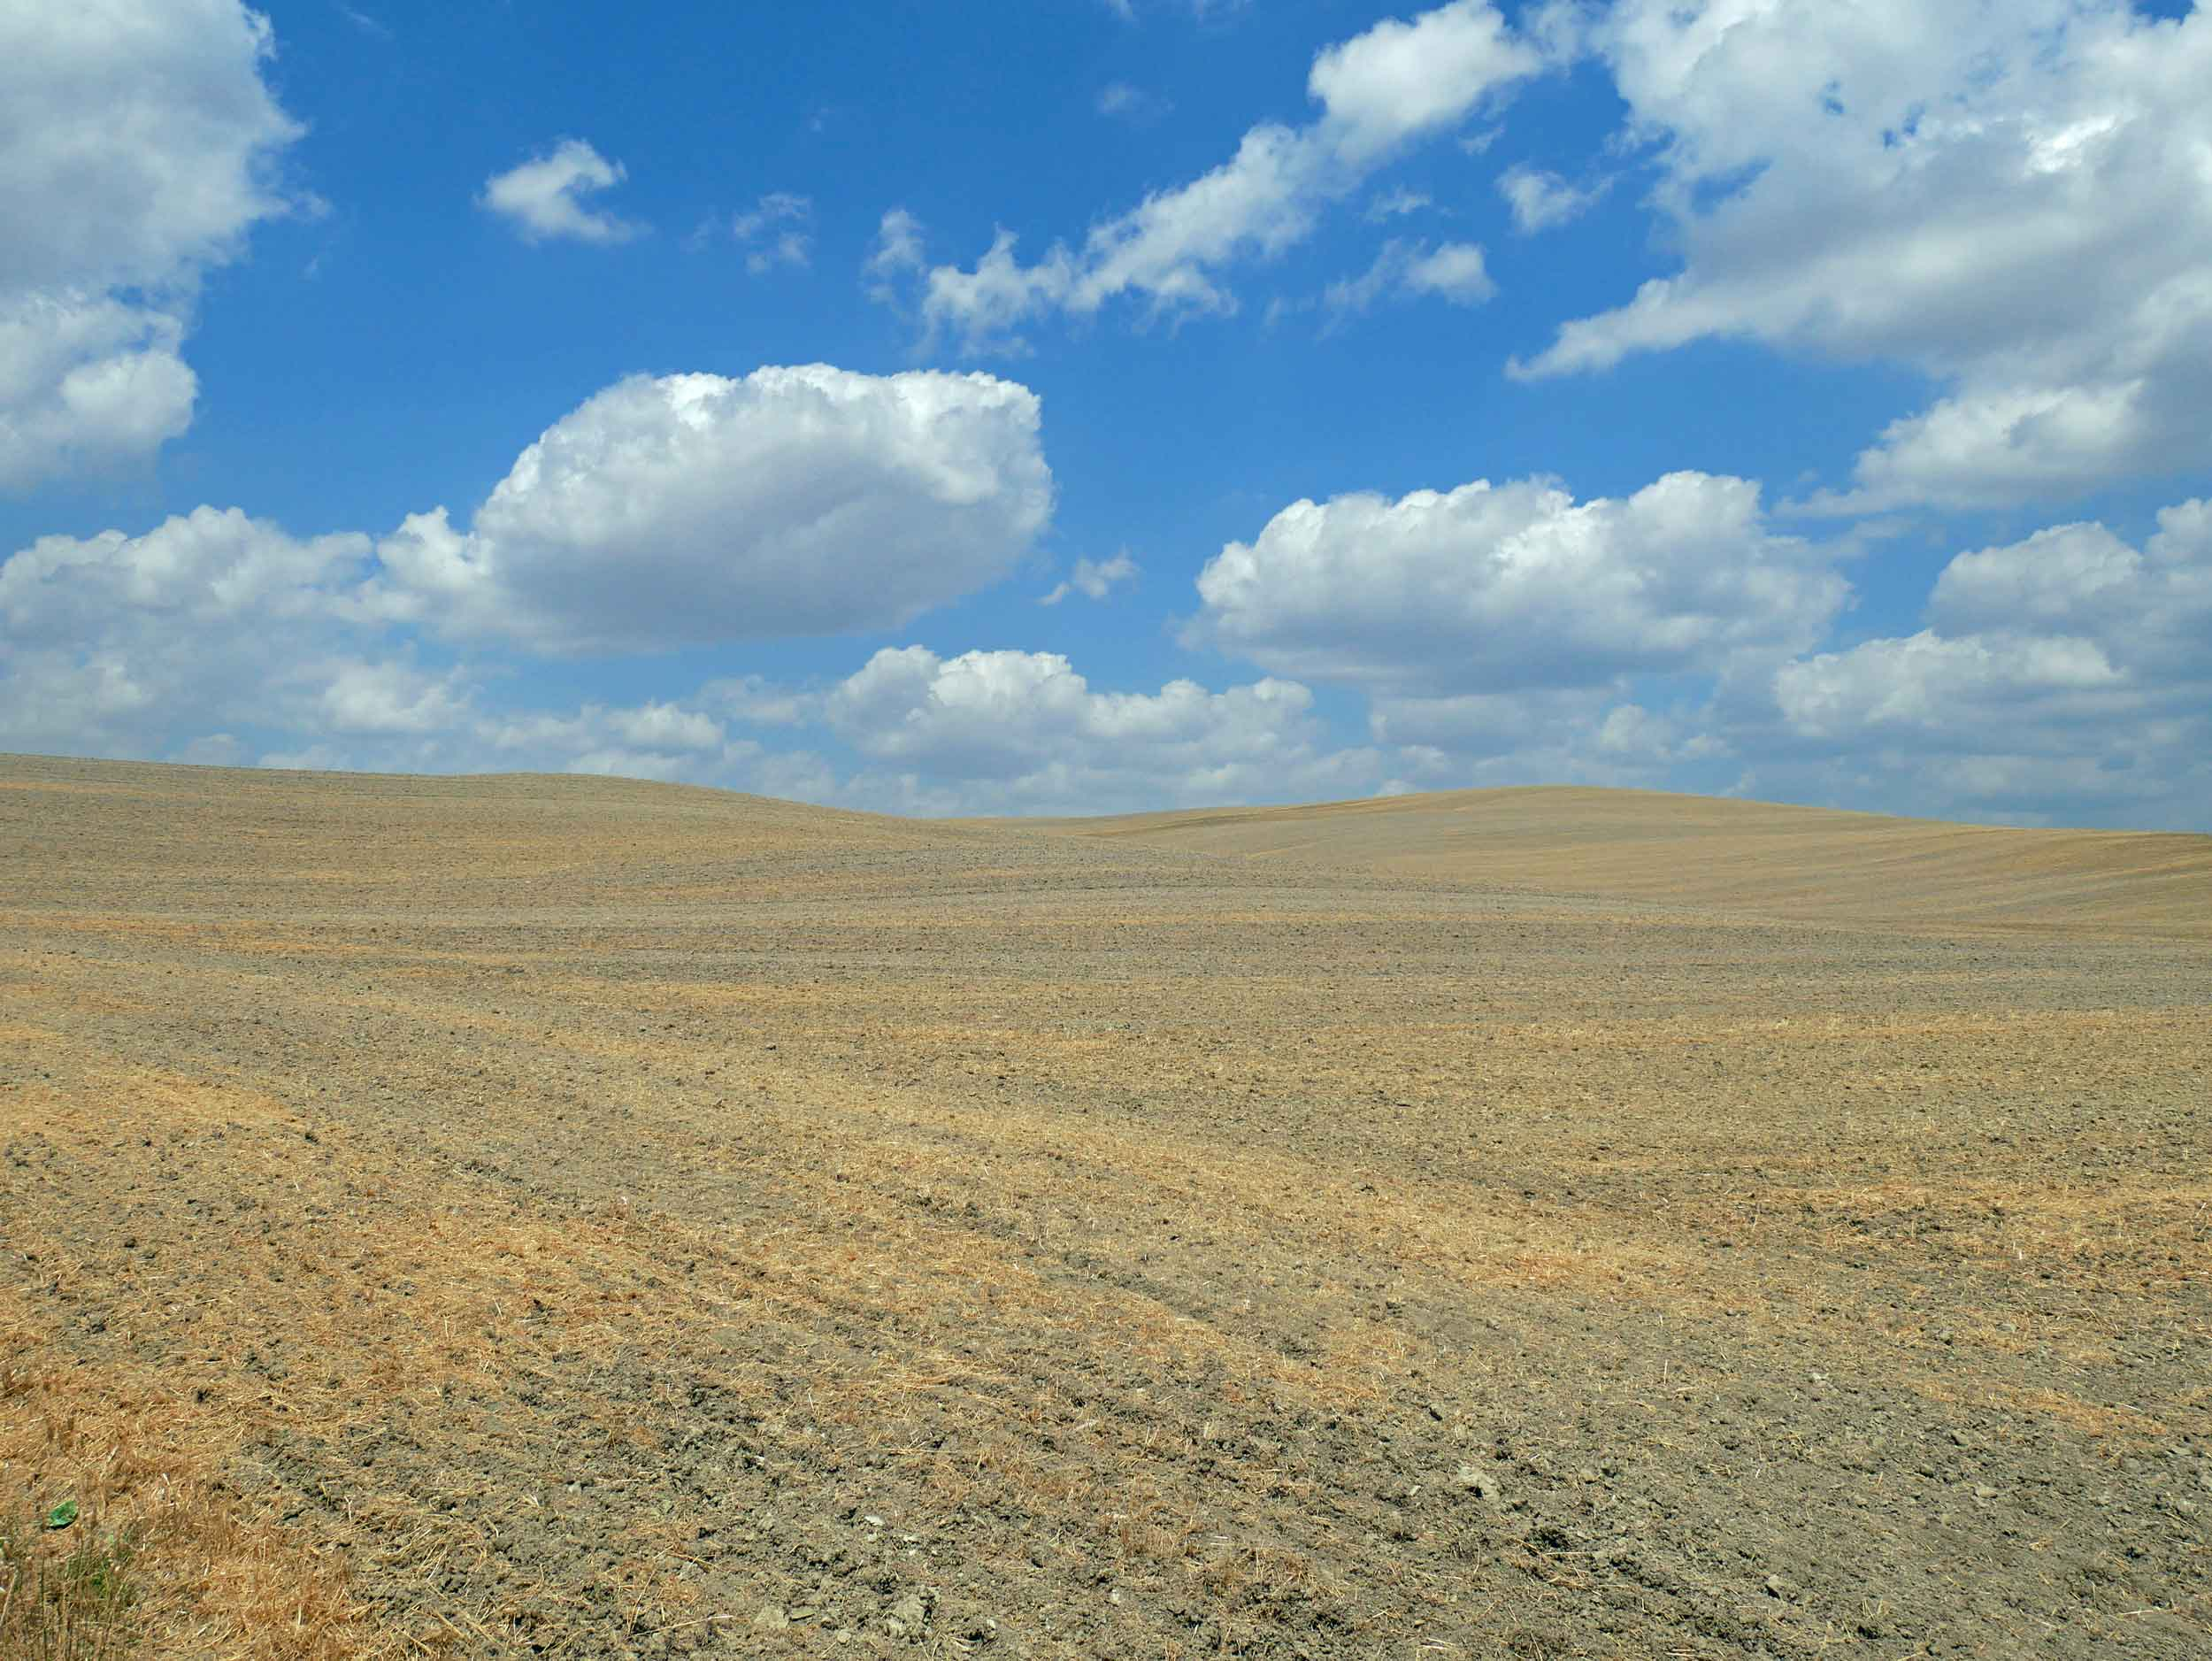 Big white fluffy clouds dotted the blue sky against yellowed fields, creating a real life Tuscan painting.